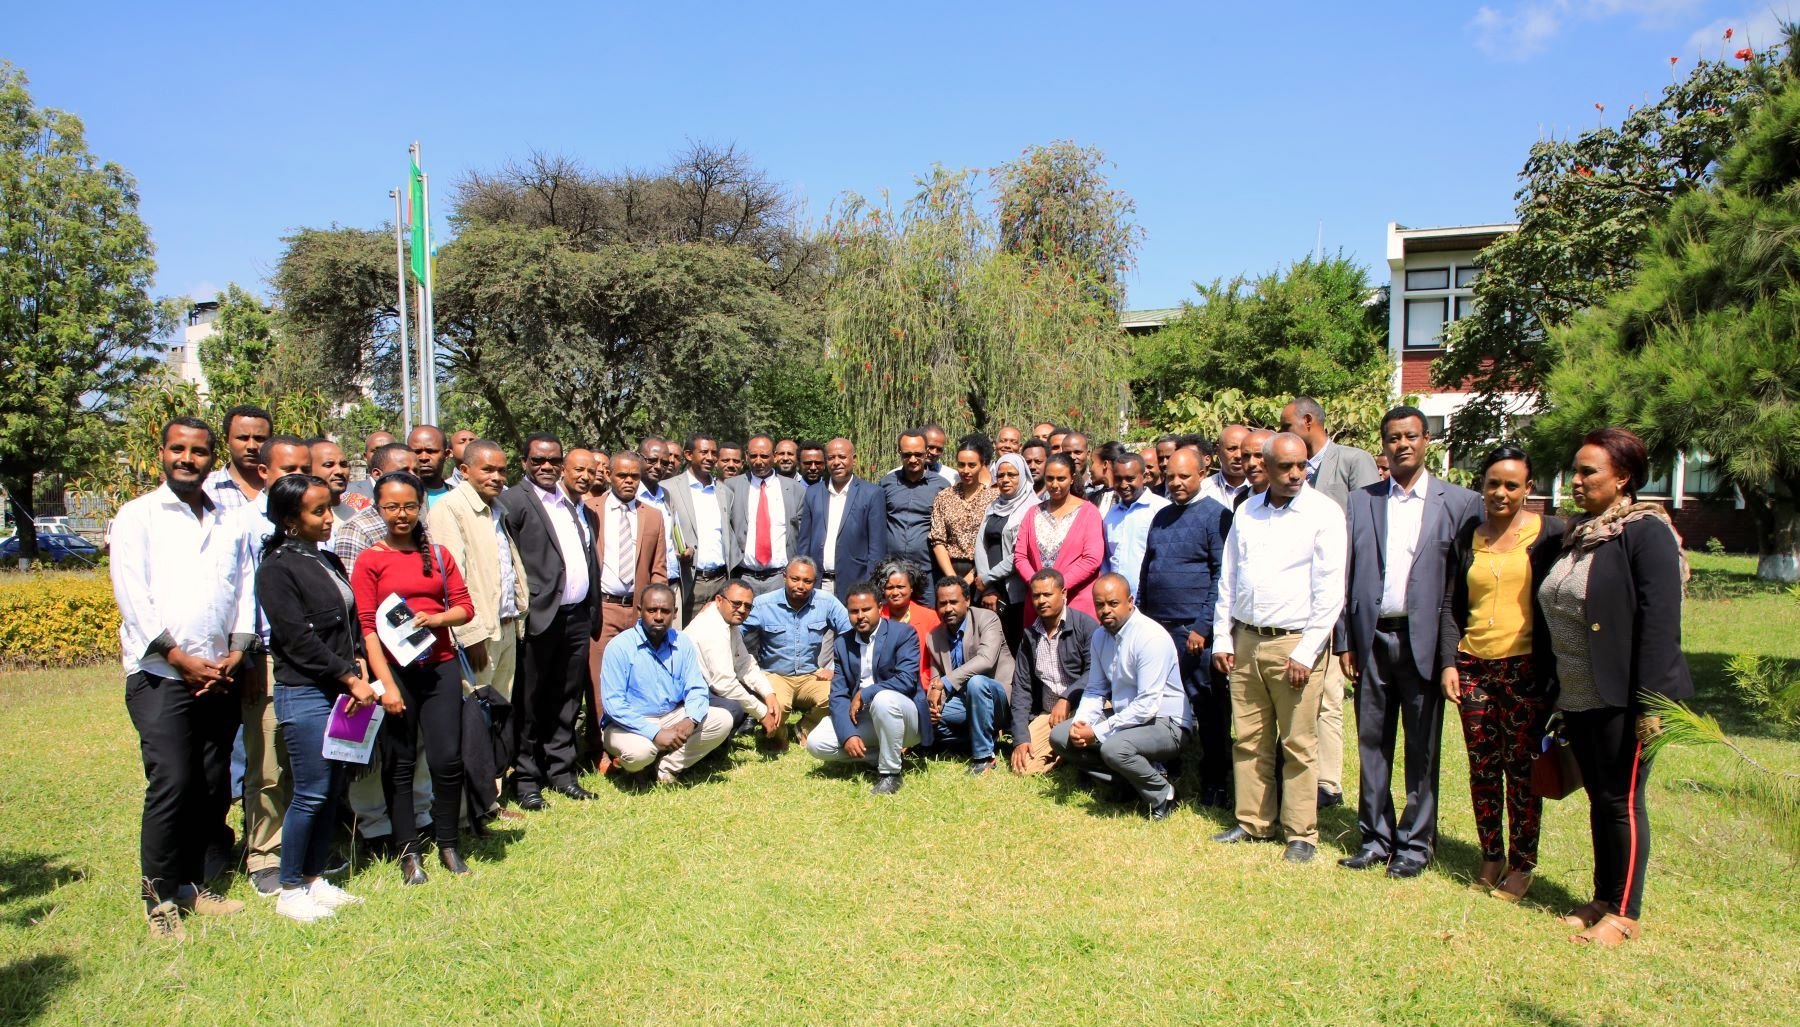 Participants of the launch of the digital agro-climate advisory platform gather for a group photo. (Photo: Semu Yemane/EIAR)